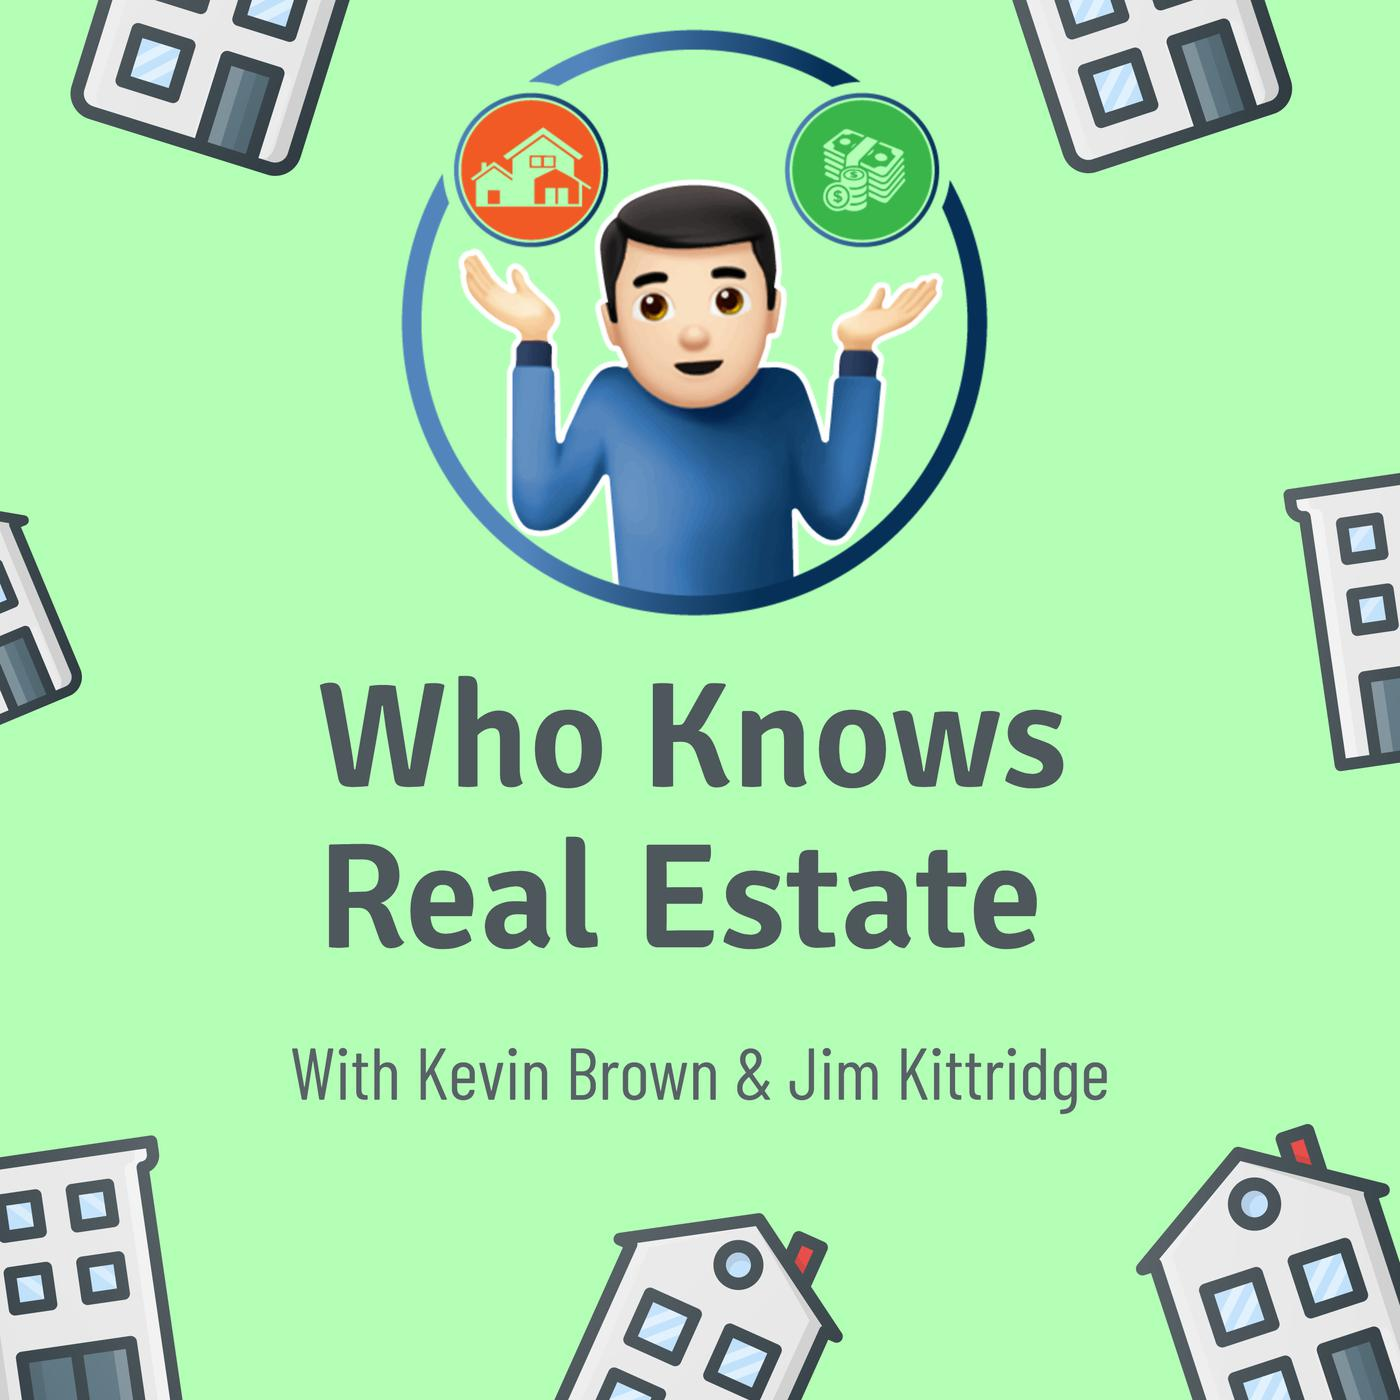 who-knows-real-estate-kevin-brown-jim-BcuhwHCLNVY.1400x1400.jpg